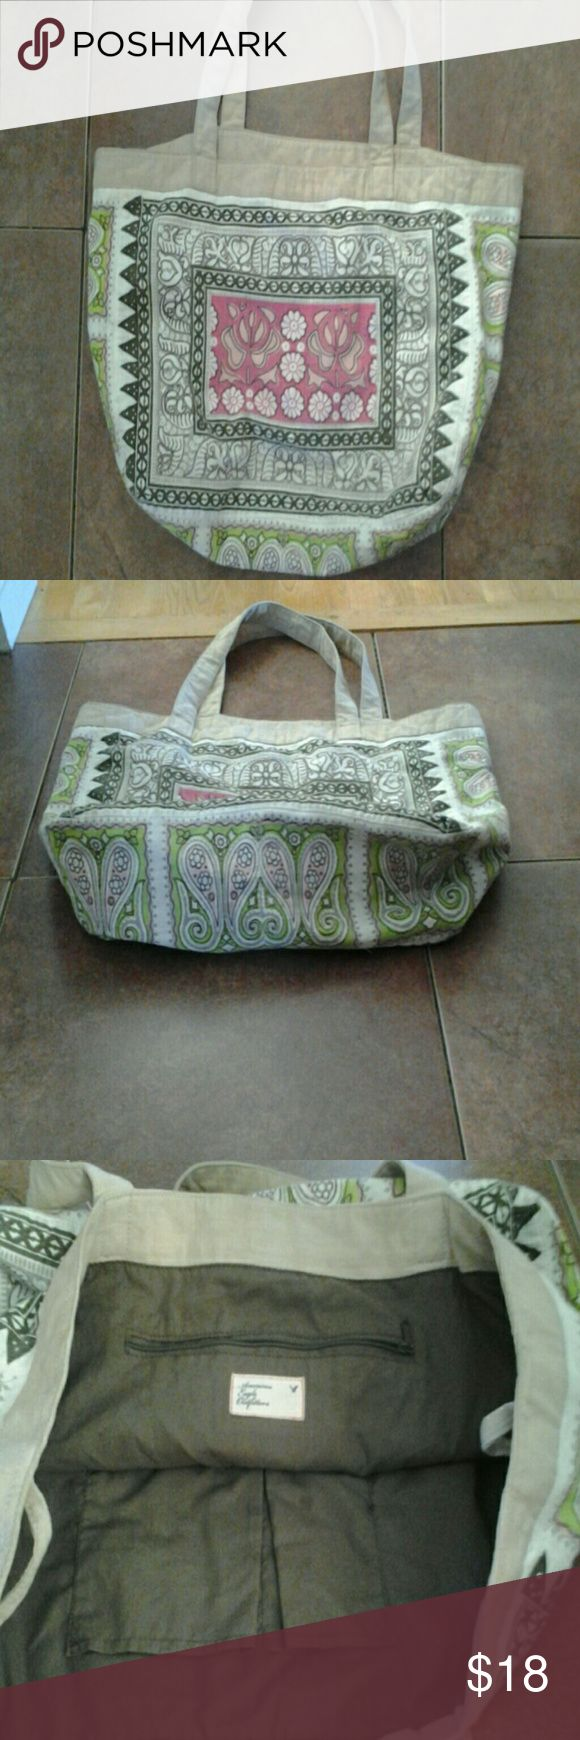 American Eagle Tote Bag Multi colored...(apple green, light pink,beige) cotton/linen with brown cotton lining. 1 zipper pocket inside and two inside pouch pockets. American Eagle Outfitters Bags Totes